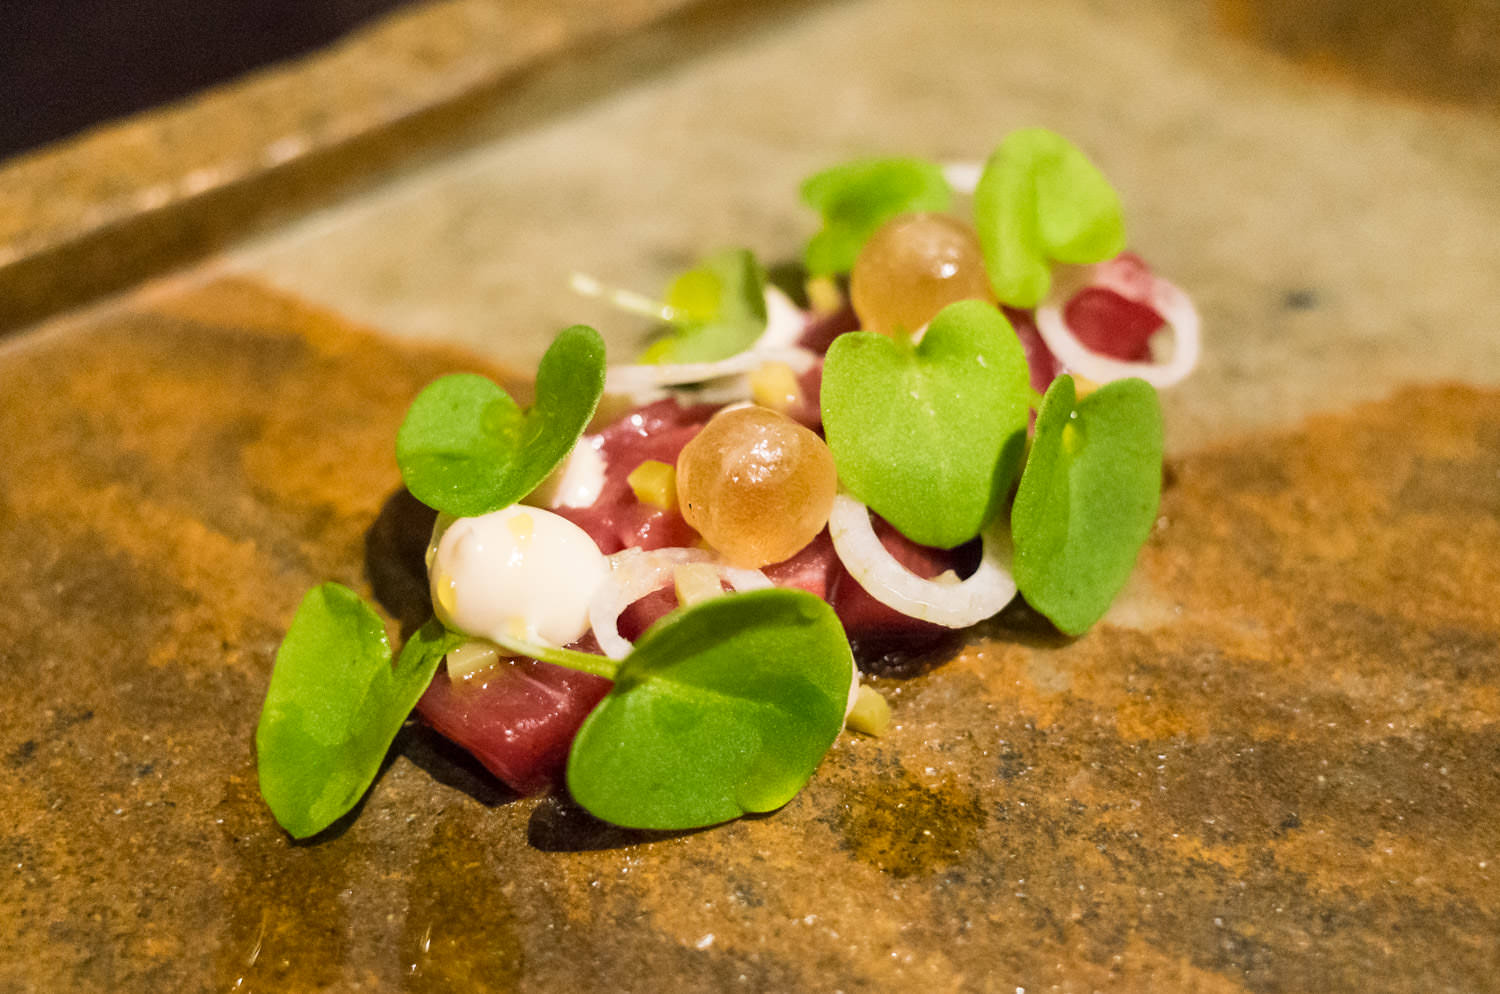 Aged veal in coal oil, shallot and sorrel